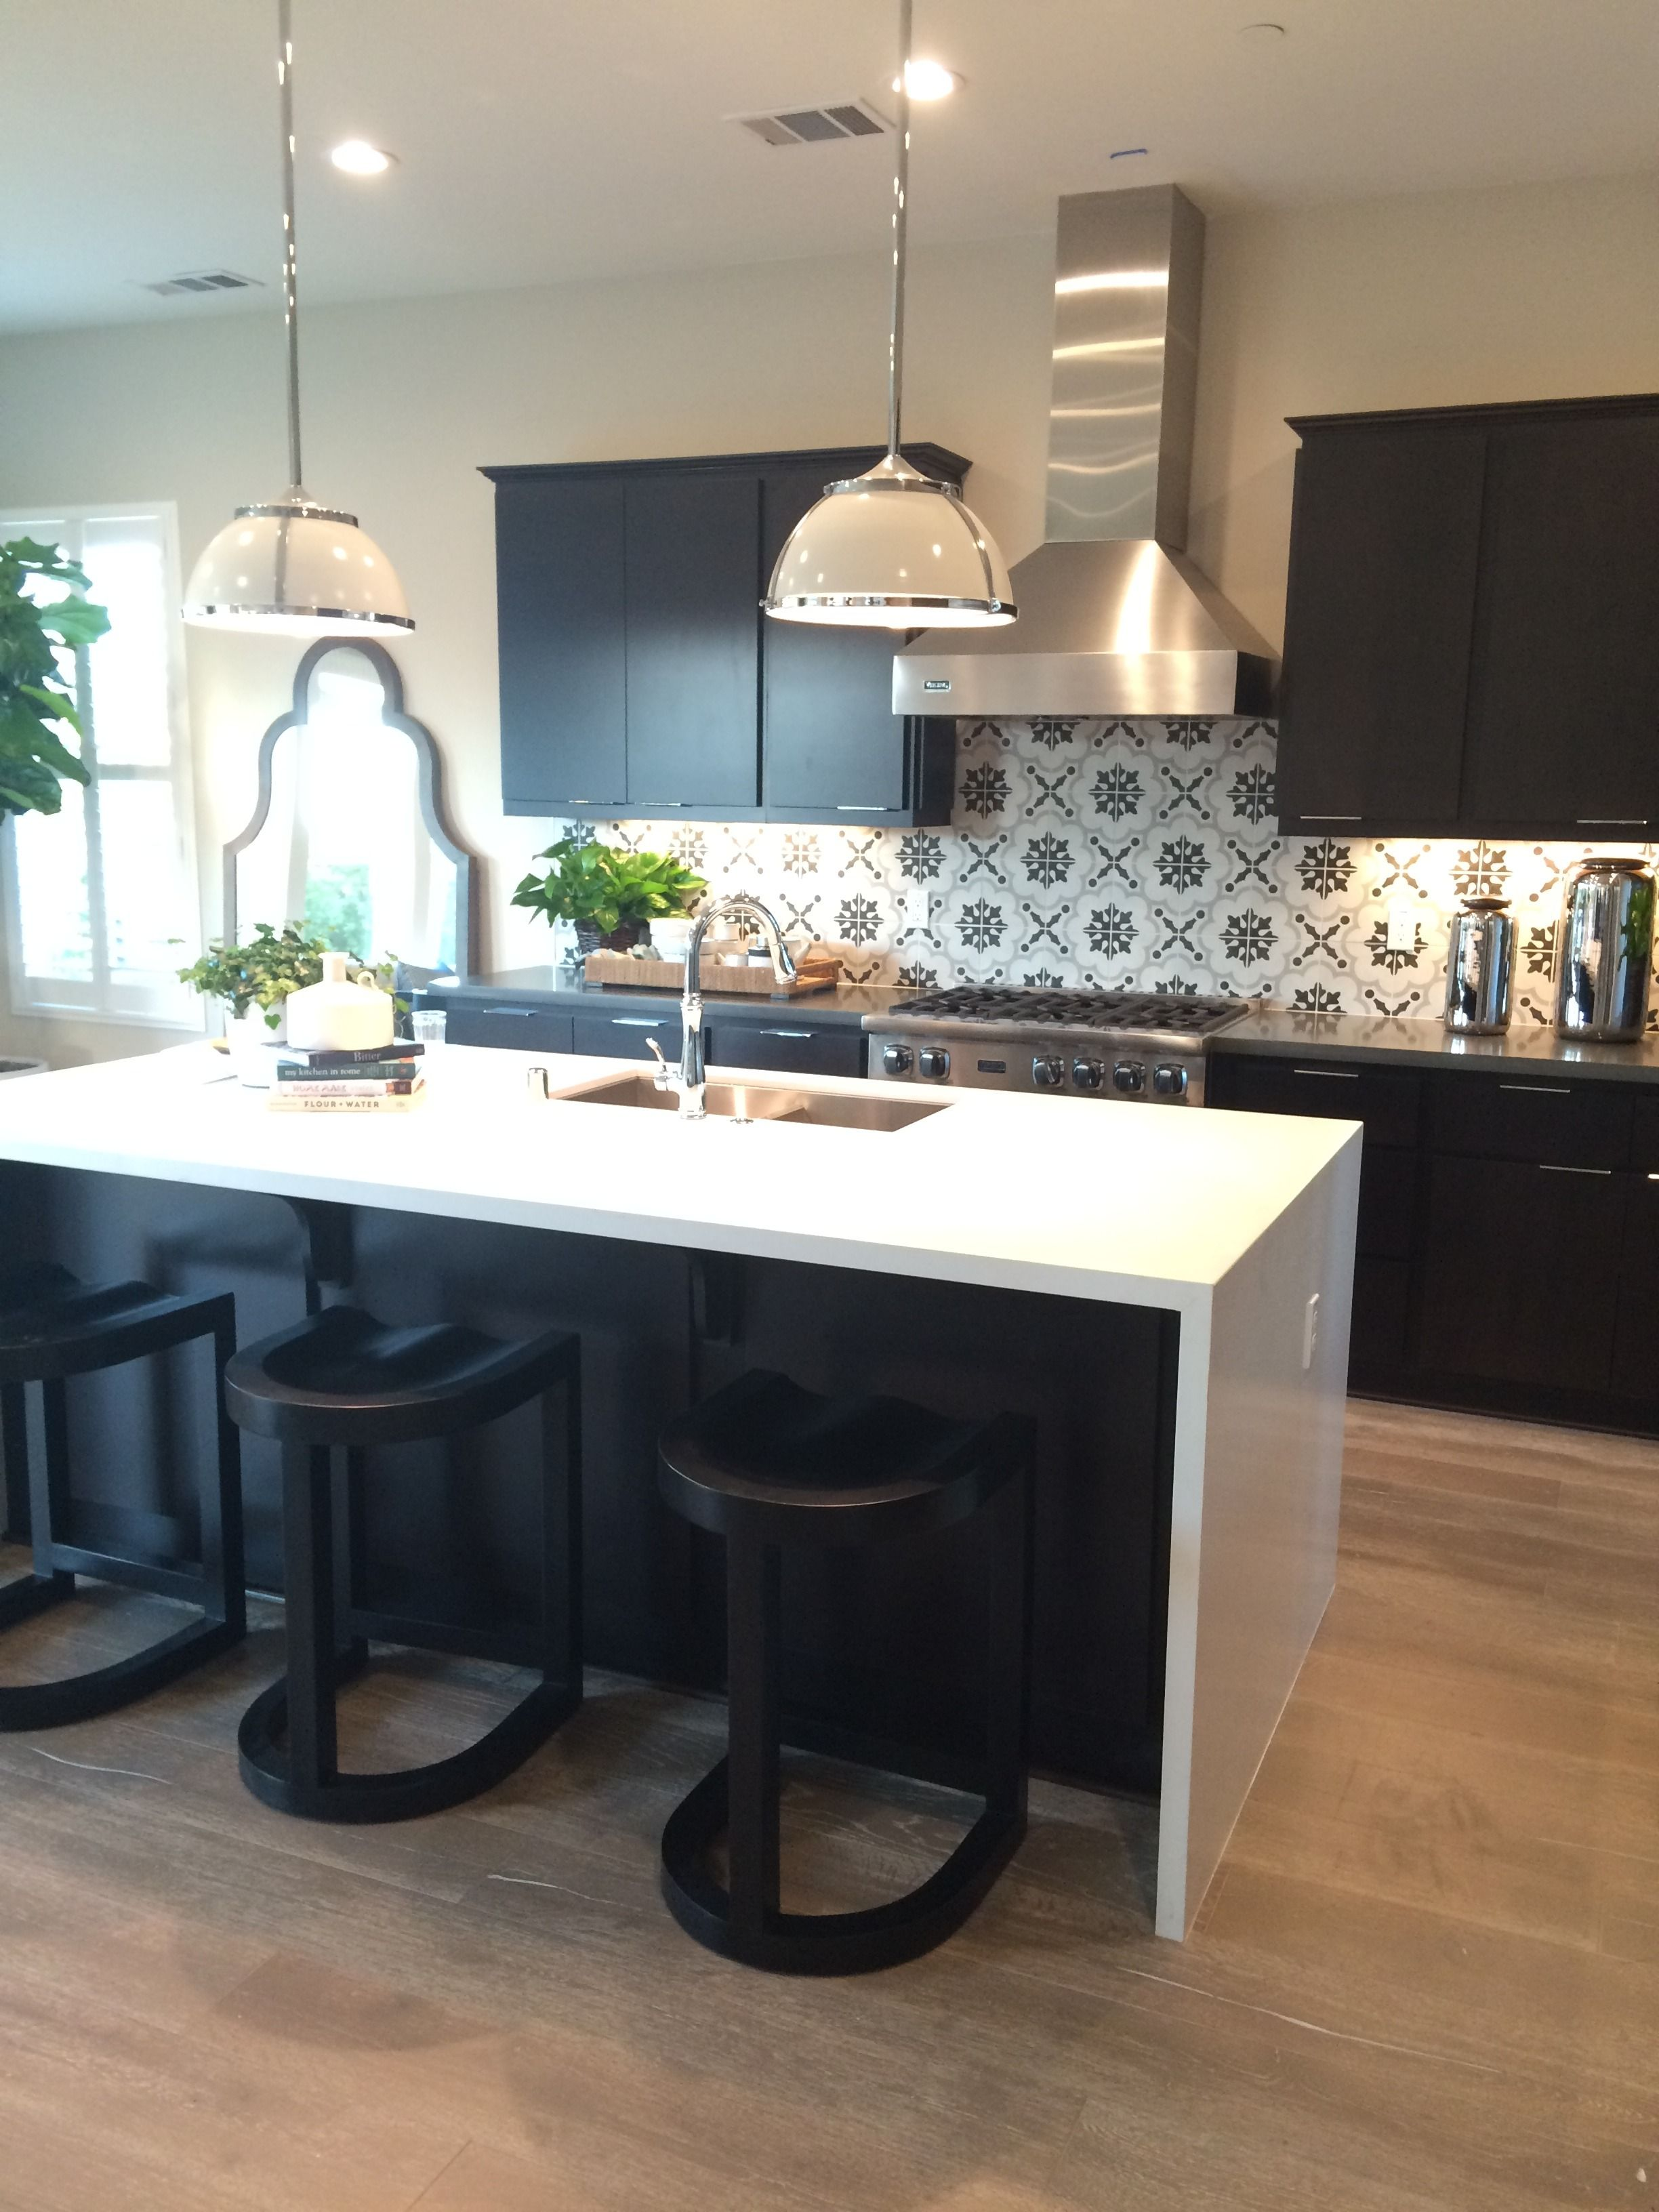 Our Black & White Cementine is looking so fine! Visit our